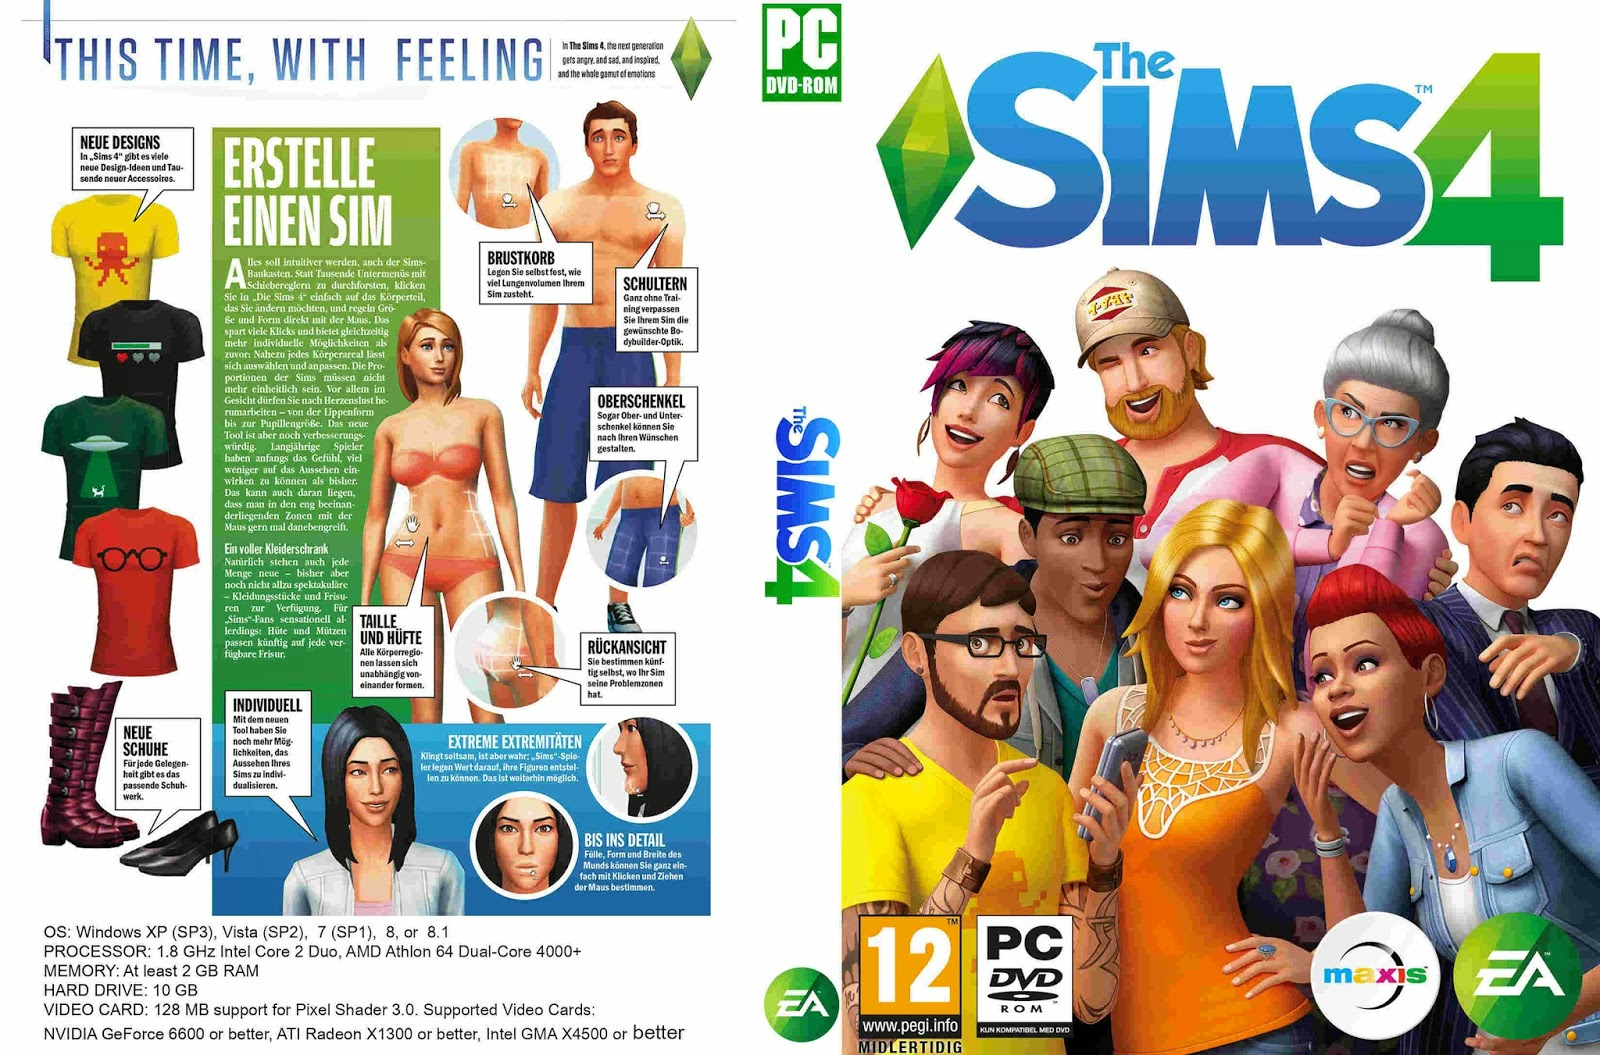 Sims3 ps3 nude add-ons nackt gallery